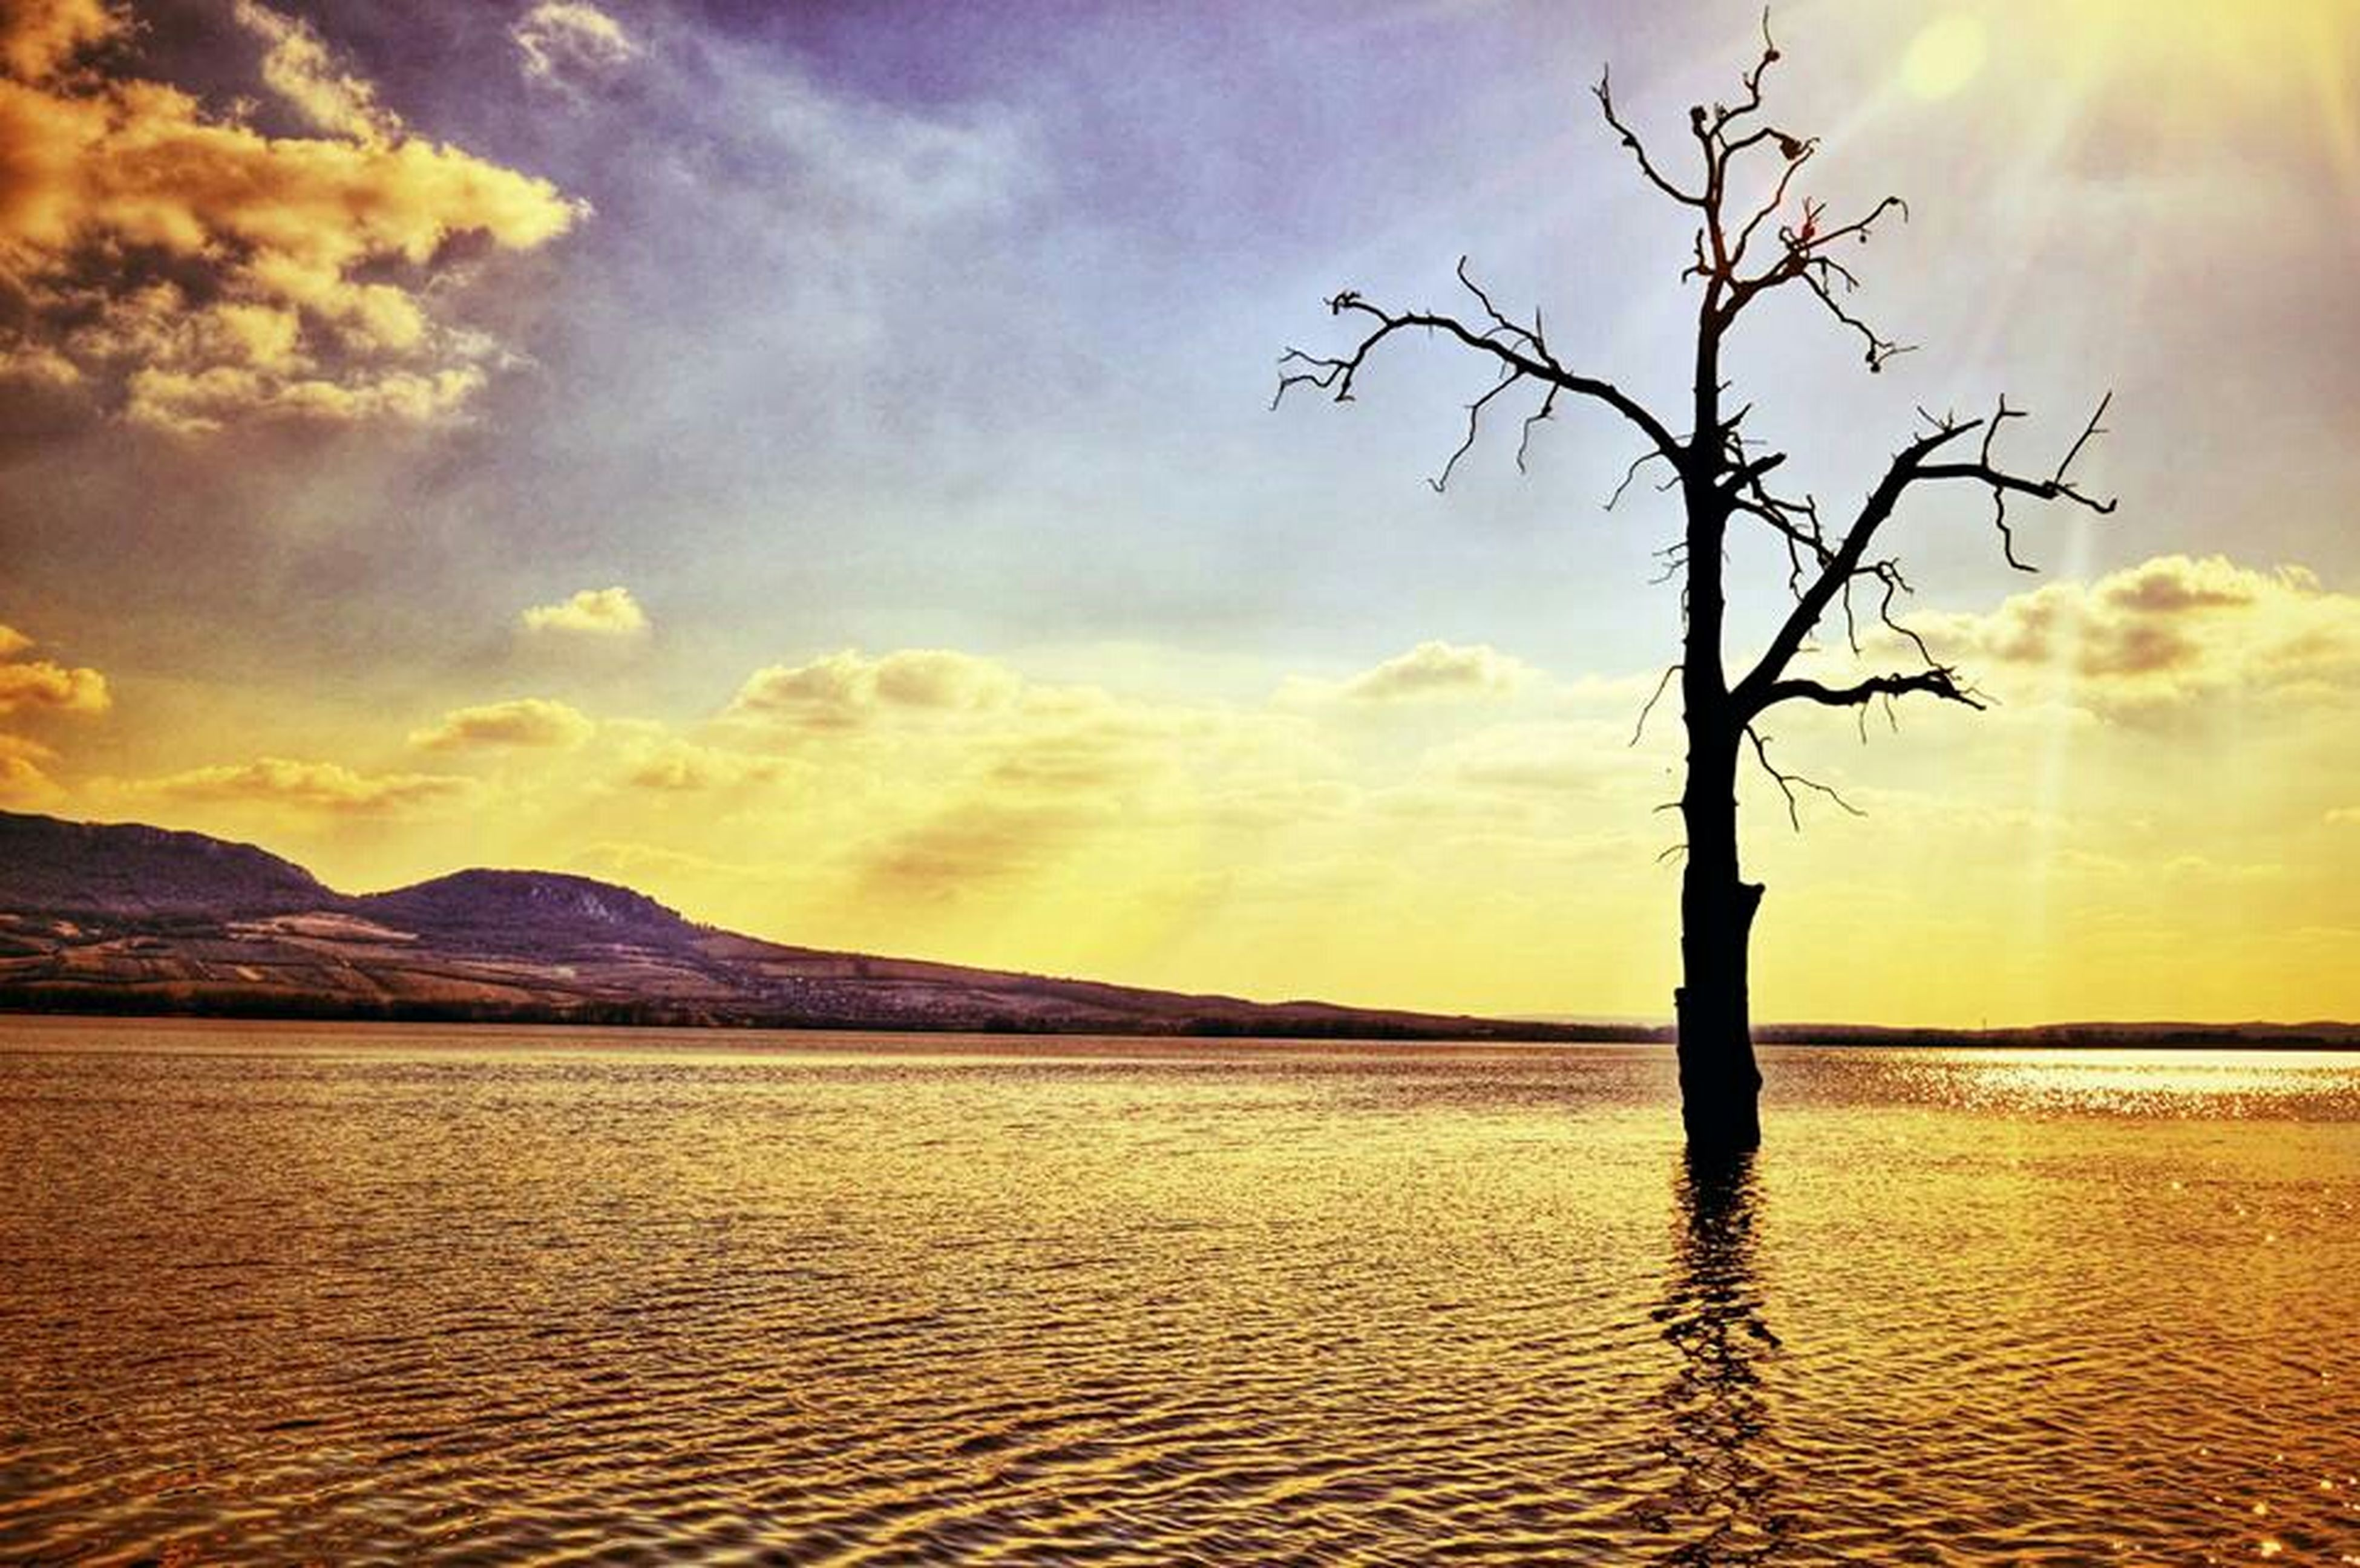 water, sky, sunset, tranquil scene, scenics, tranquility, beauty in nature, cloud - sky, sea, nature, waterfront, cloud, idyllic, rippled, cloudy, tree, silhouette, lake, bare tree, reflection